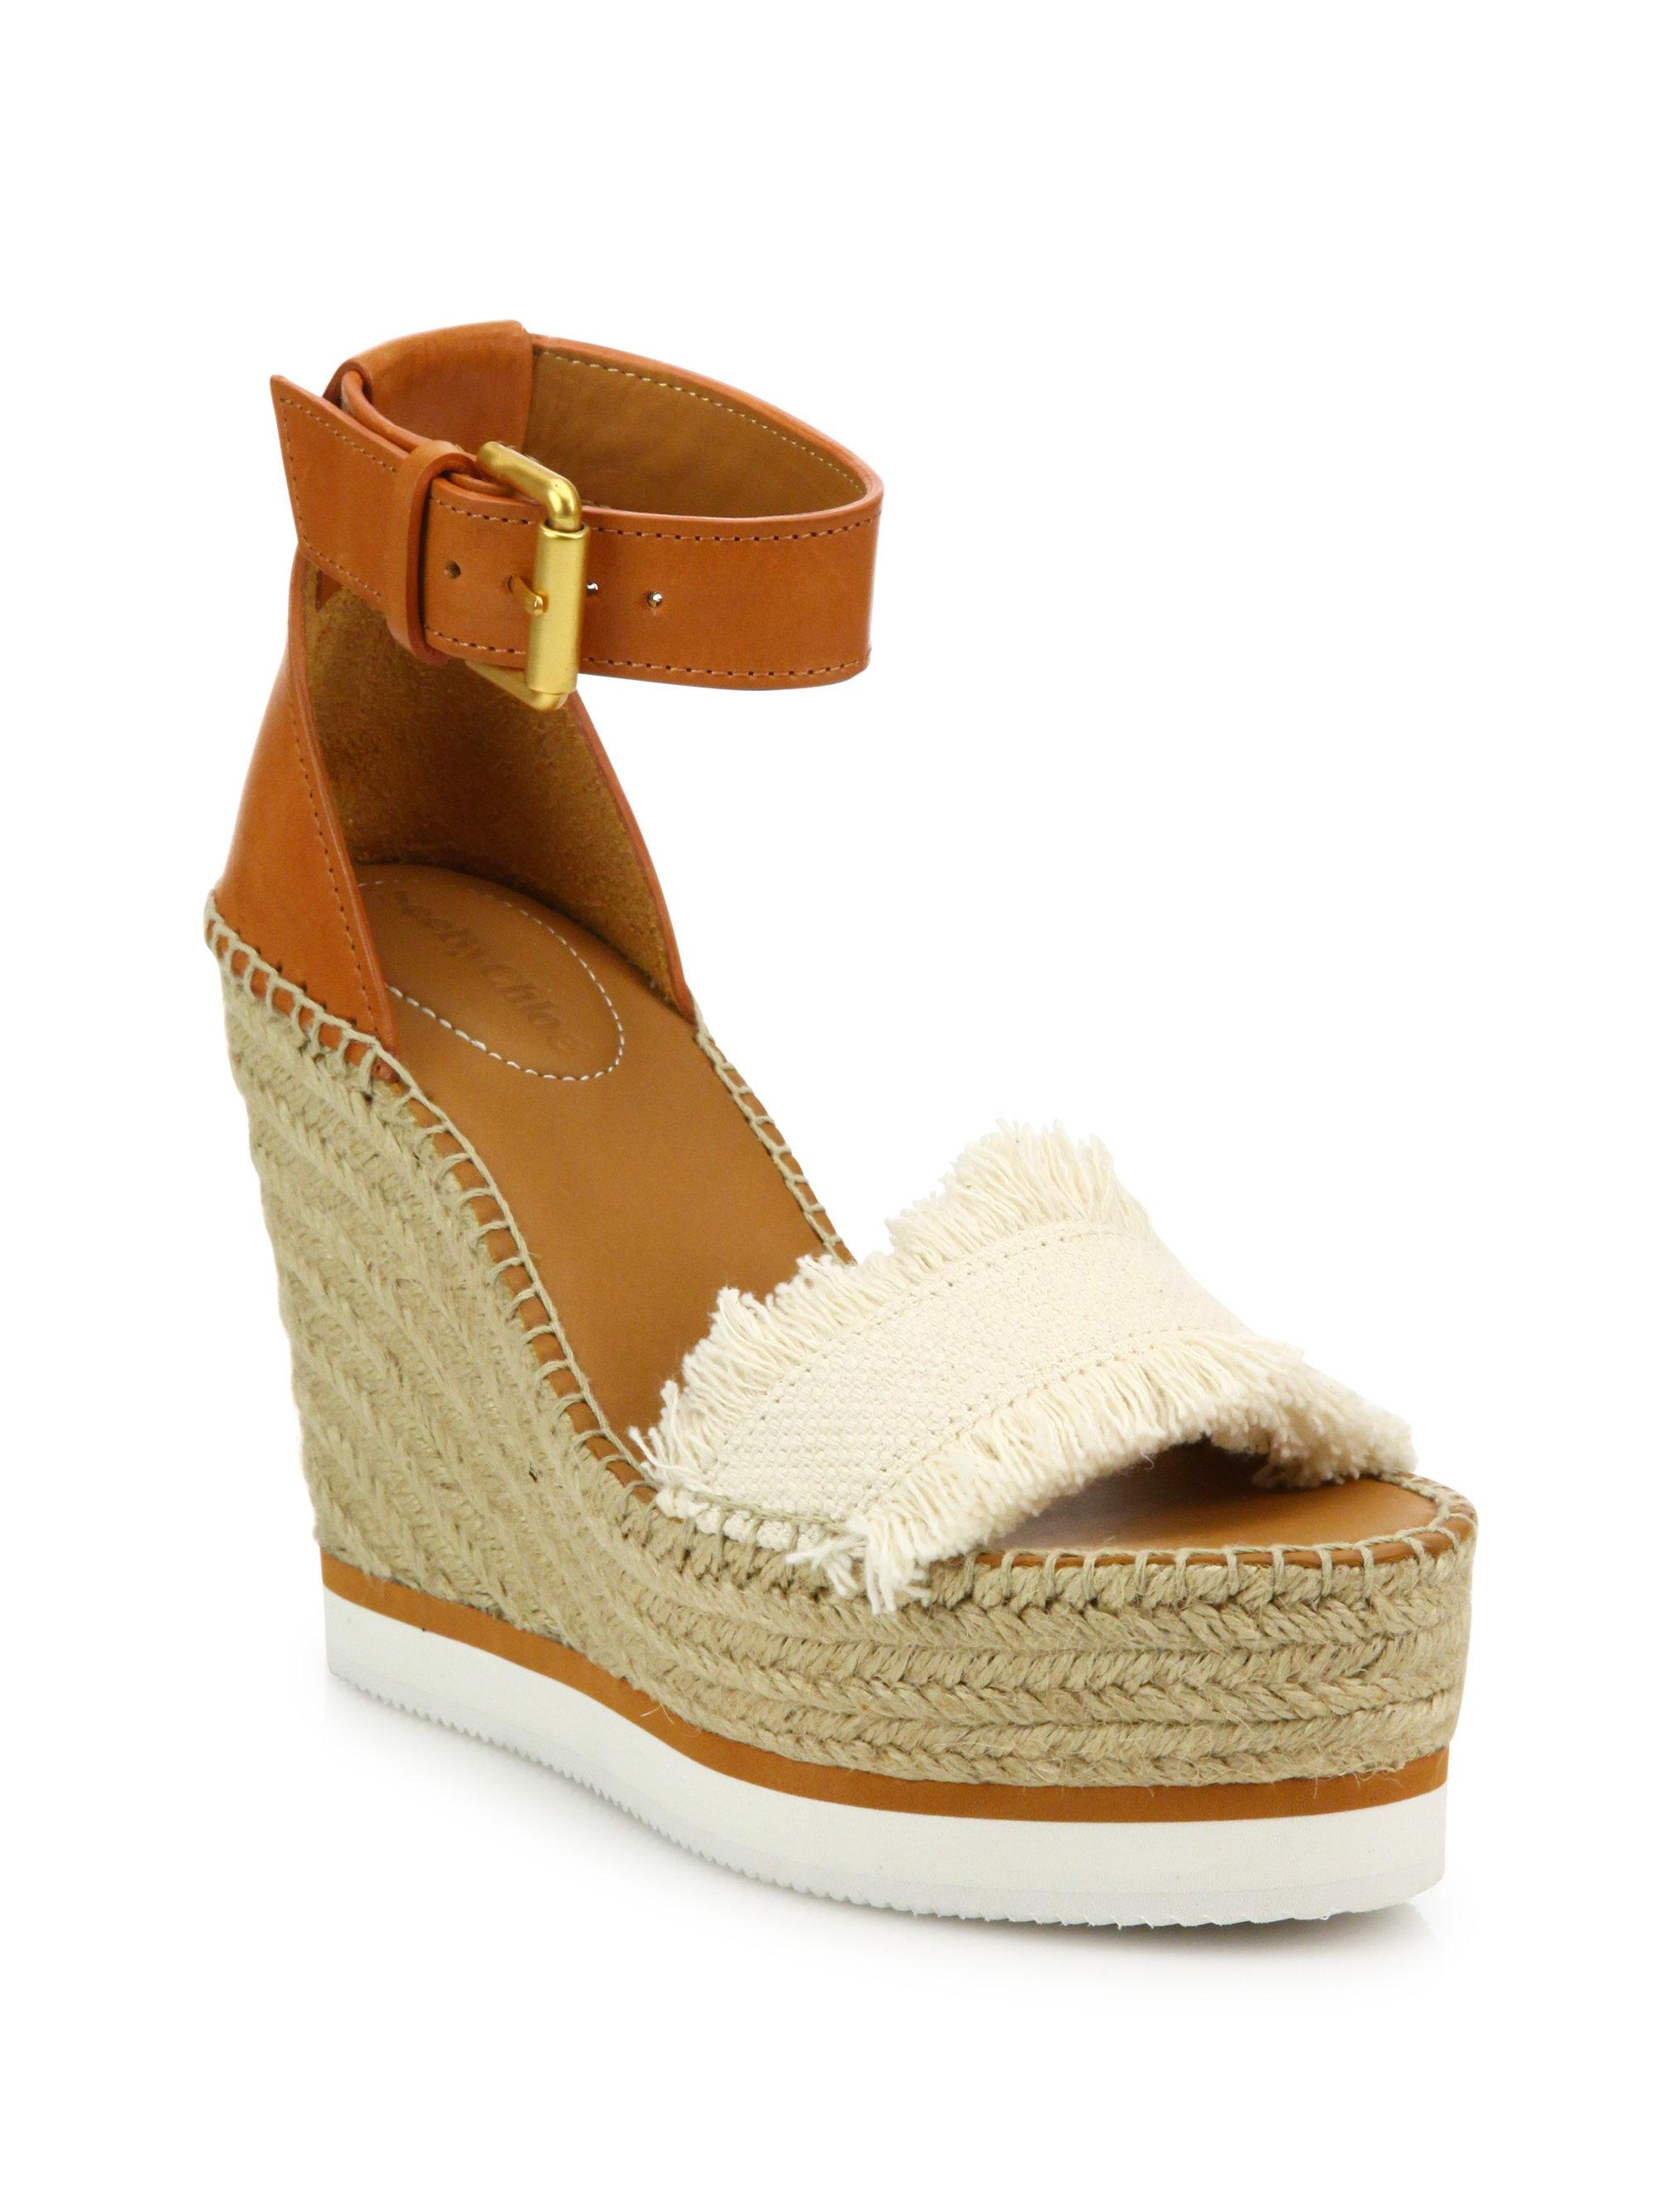 Leather and canvas wedge sandals See By Chlo�� tcgiP5AFJ